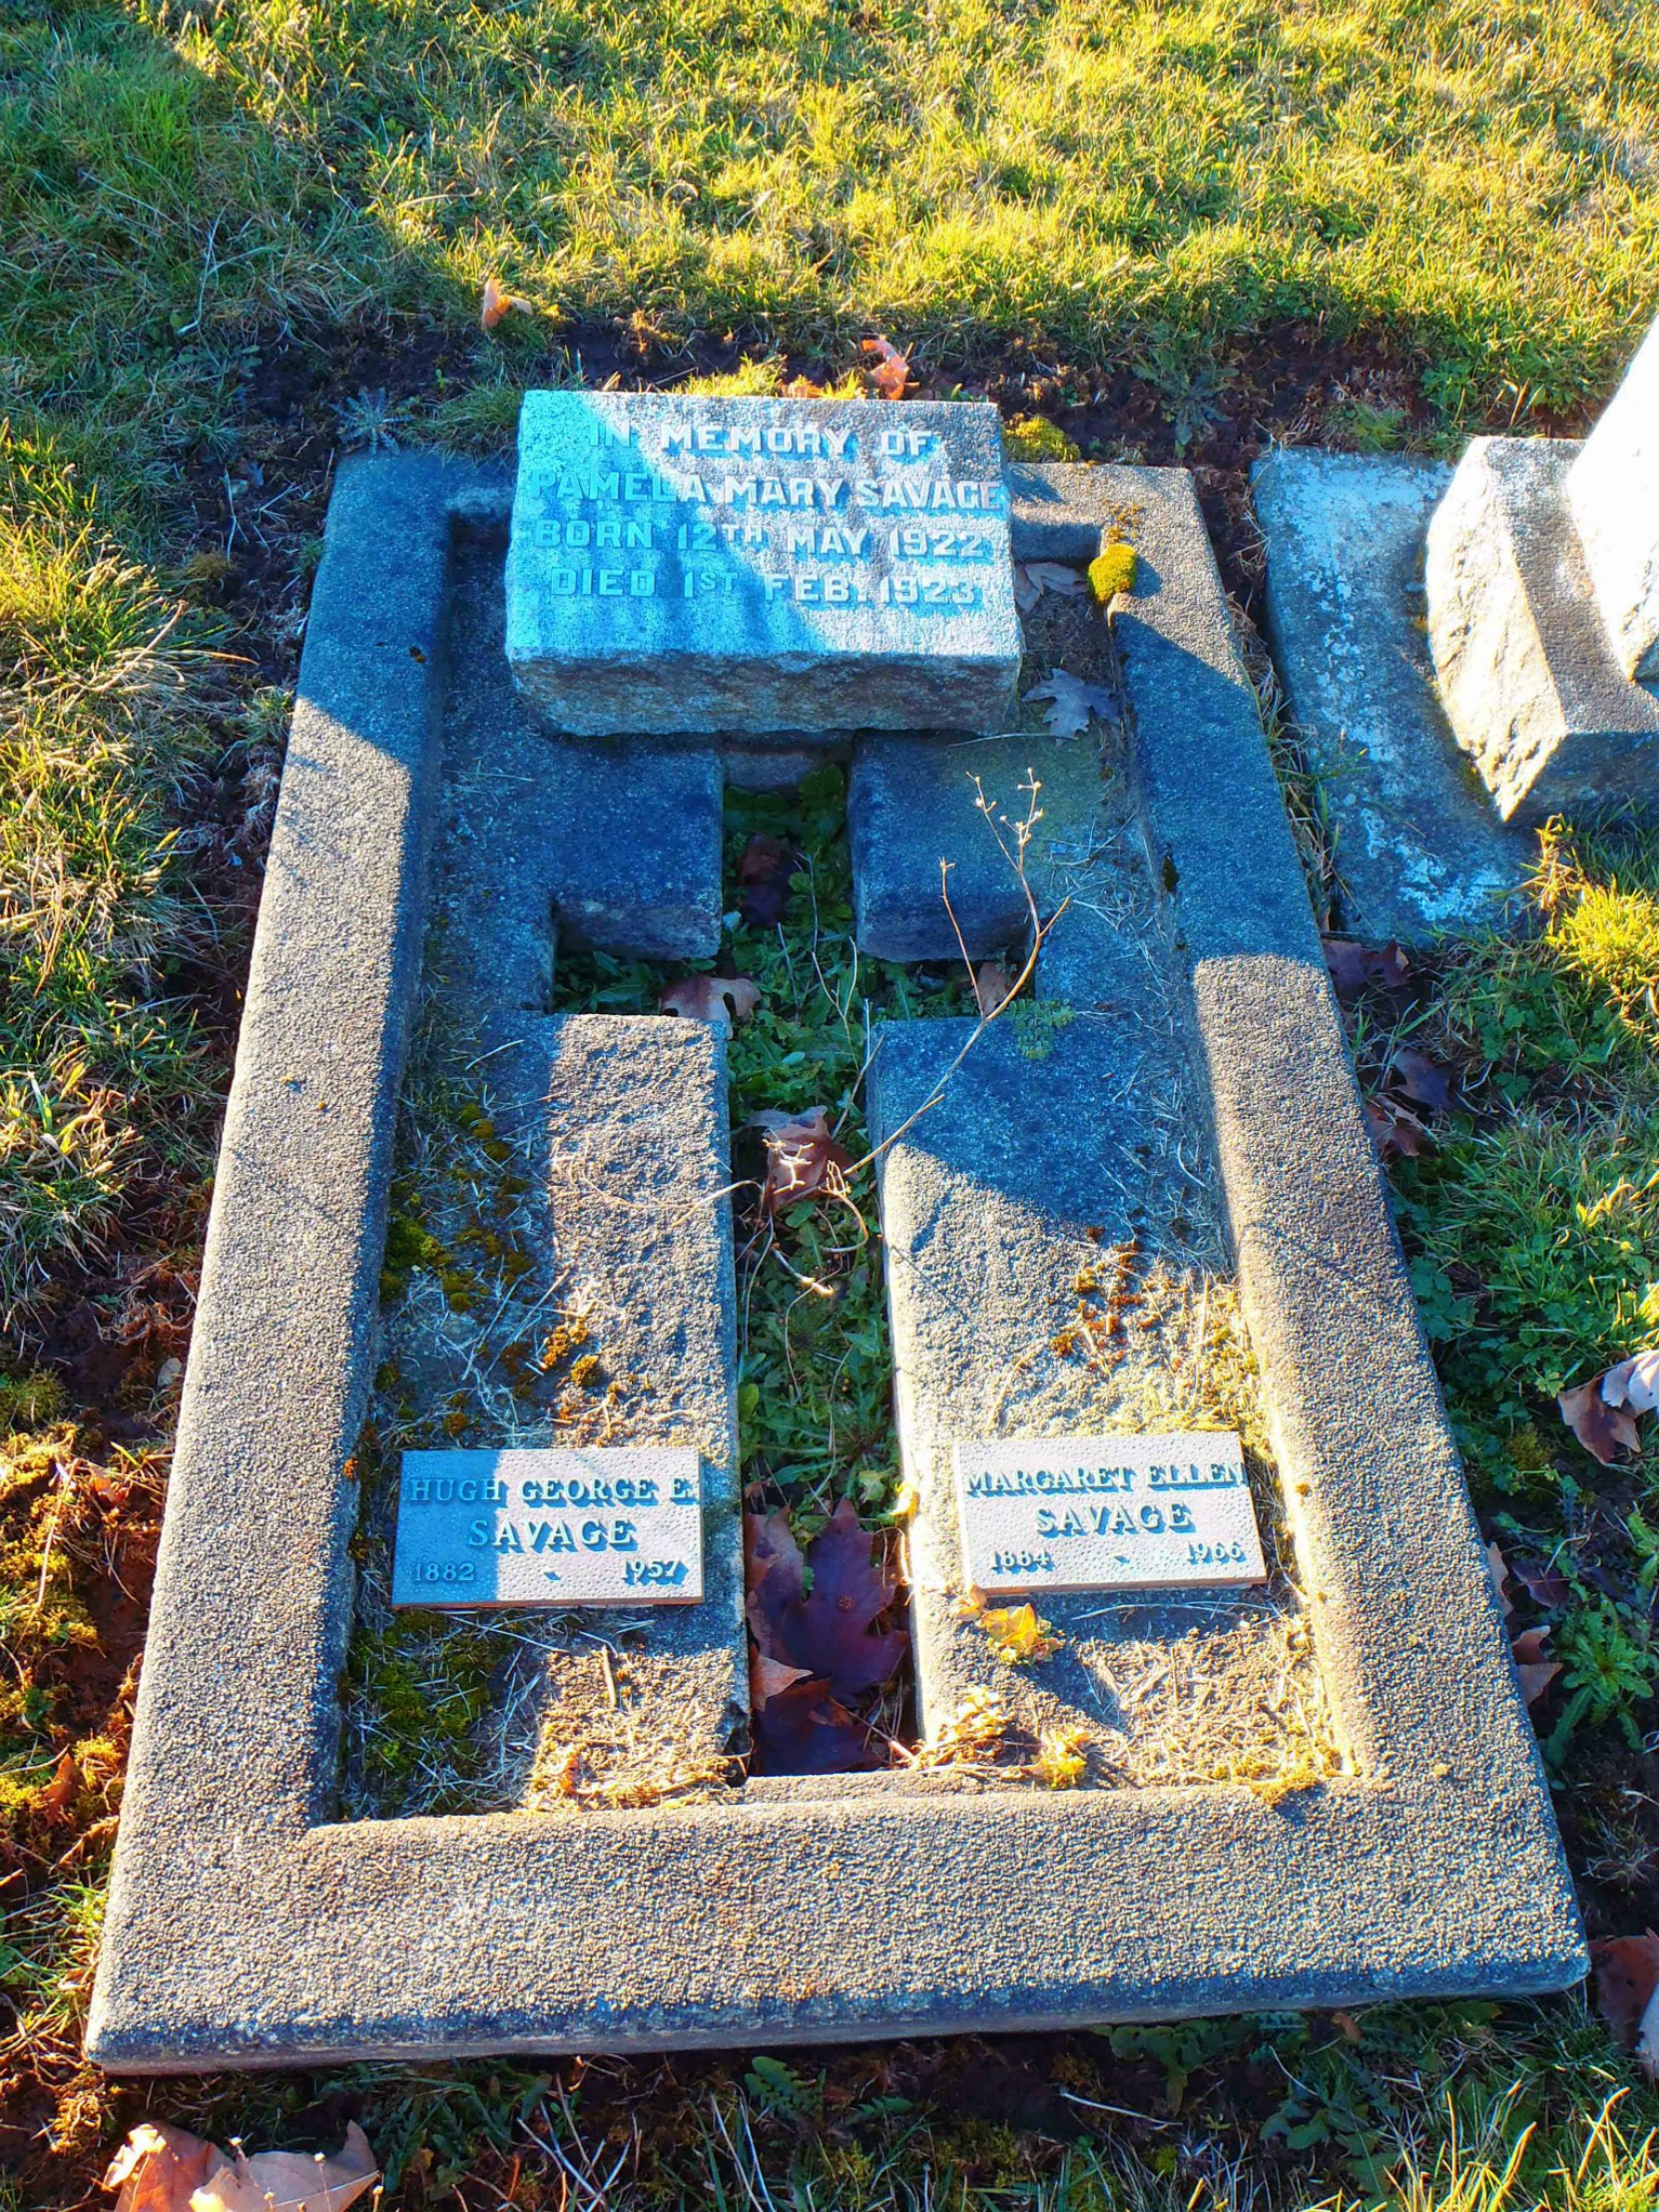 Hugh George Savage family grave marker, St. Mary's Somenos Anglican cemetery